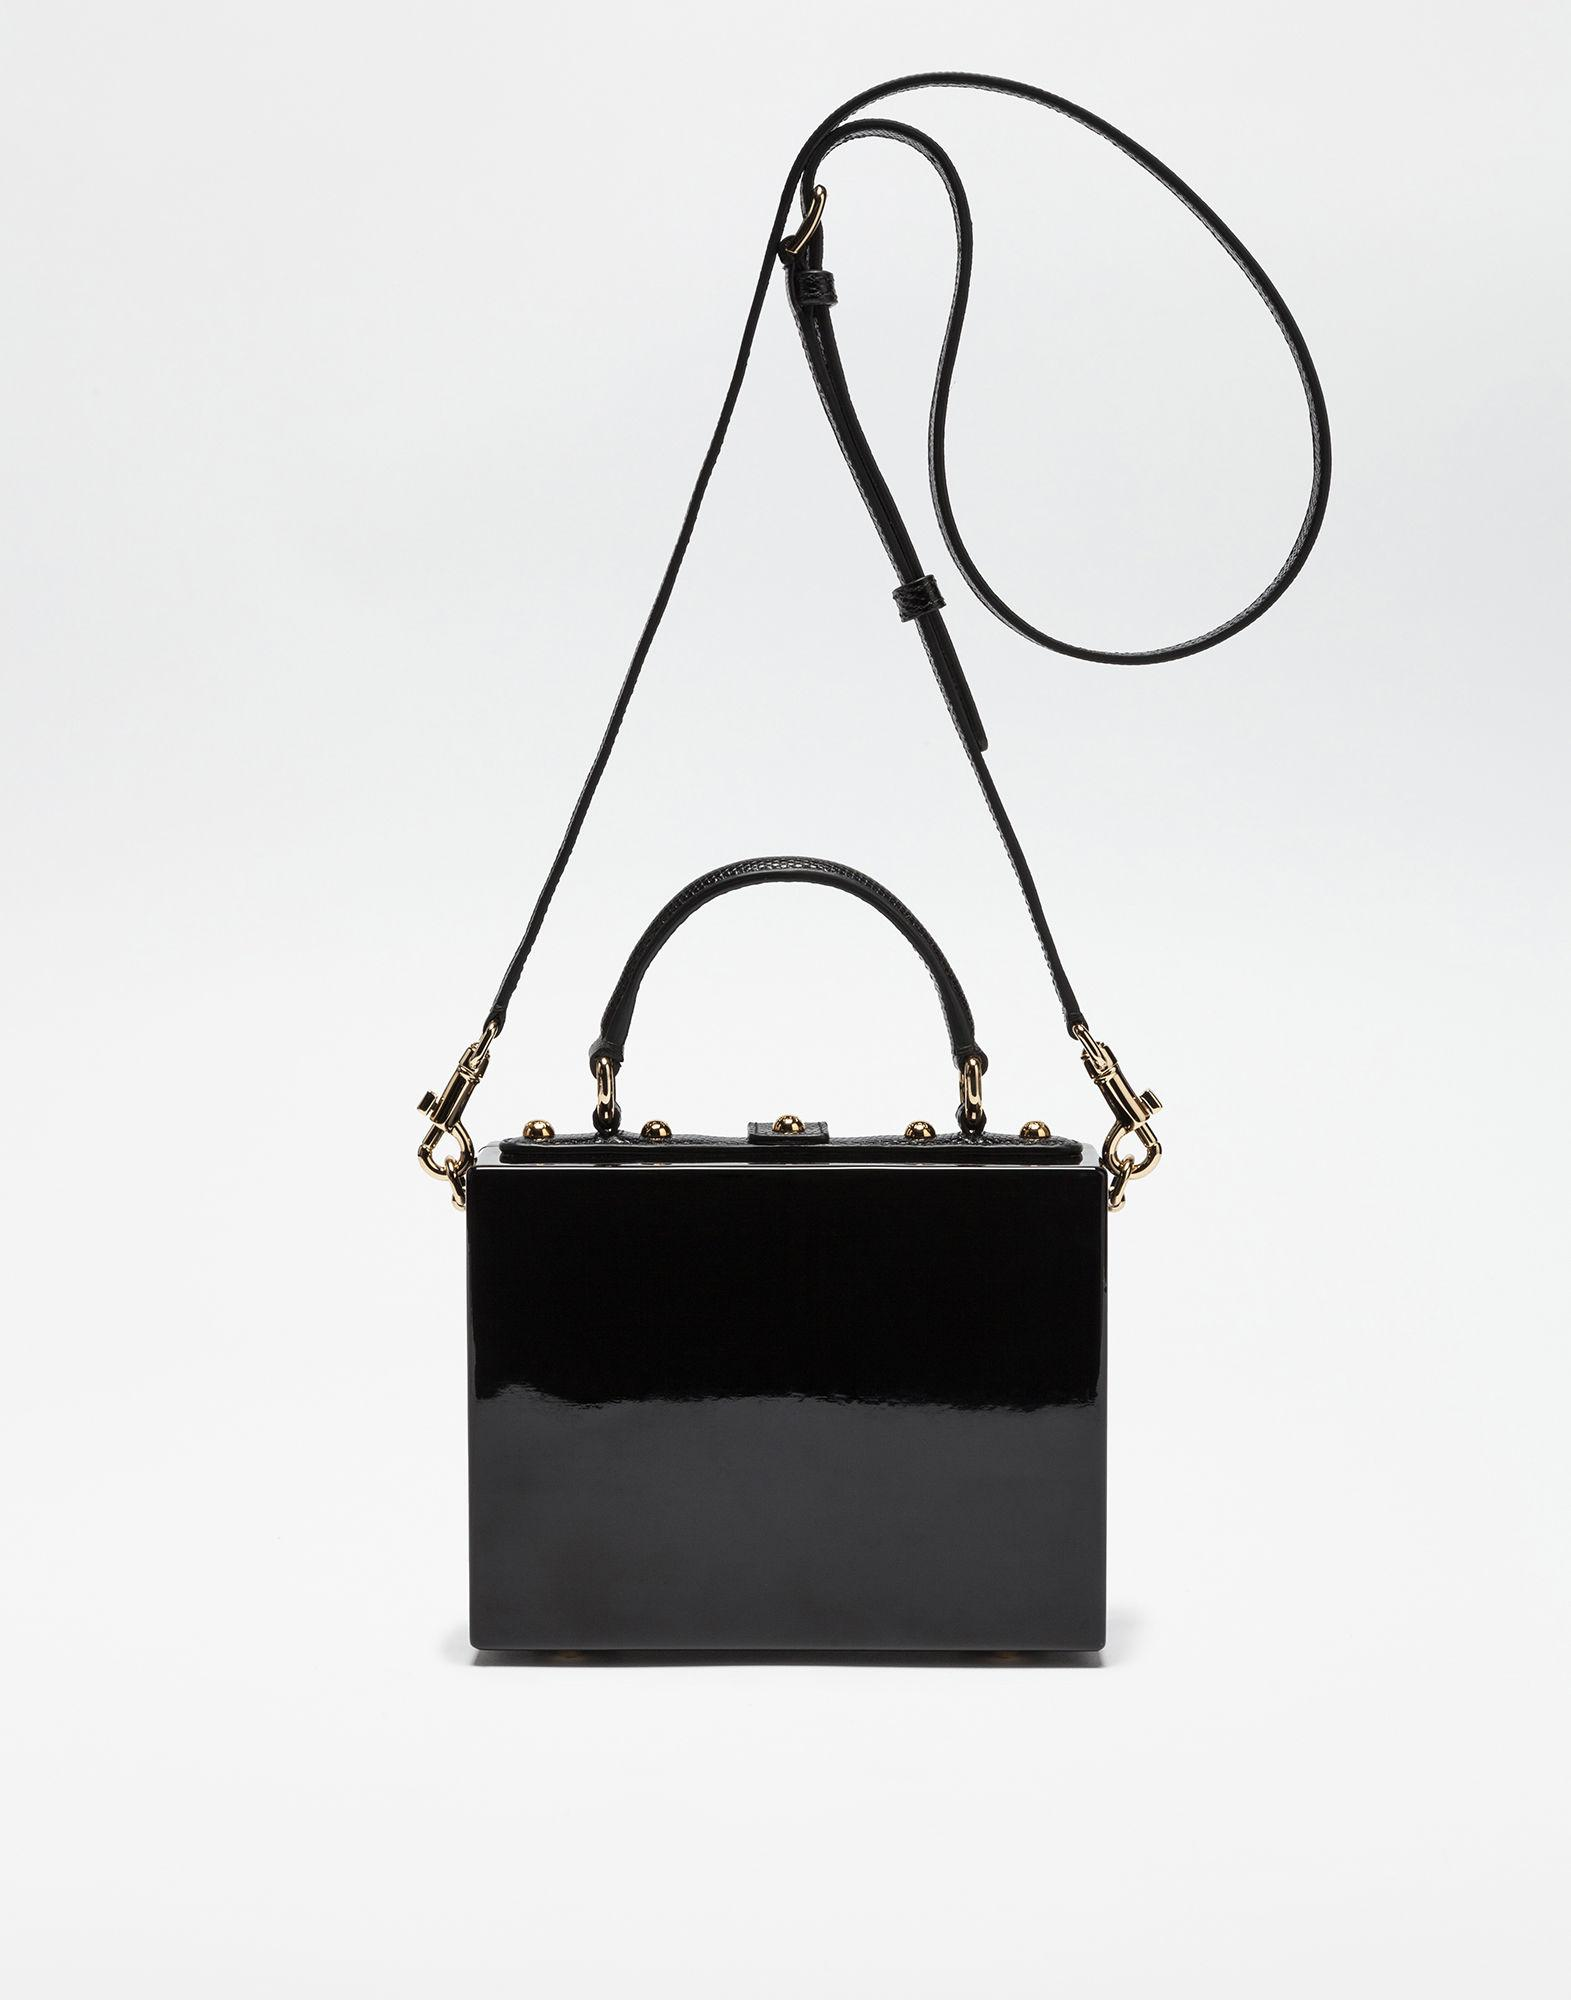 71230d1a93dc Lyst - Dolce   Gabbana Hand-painted Wood Dolce Box Bag